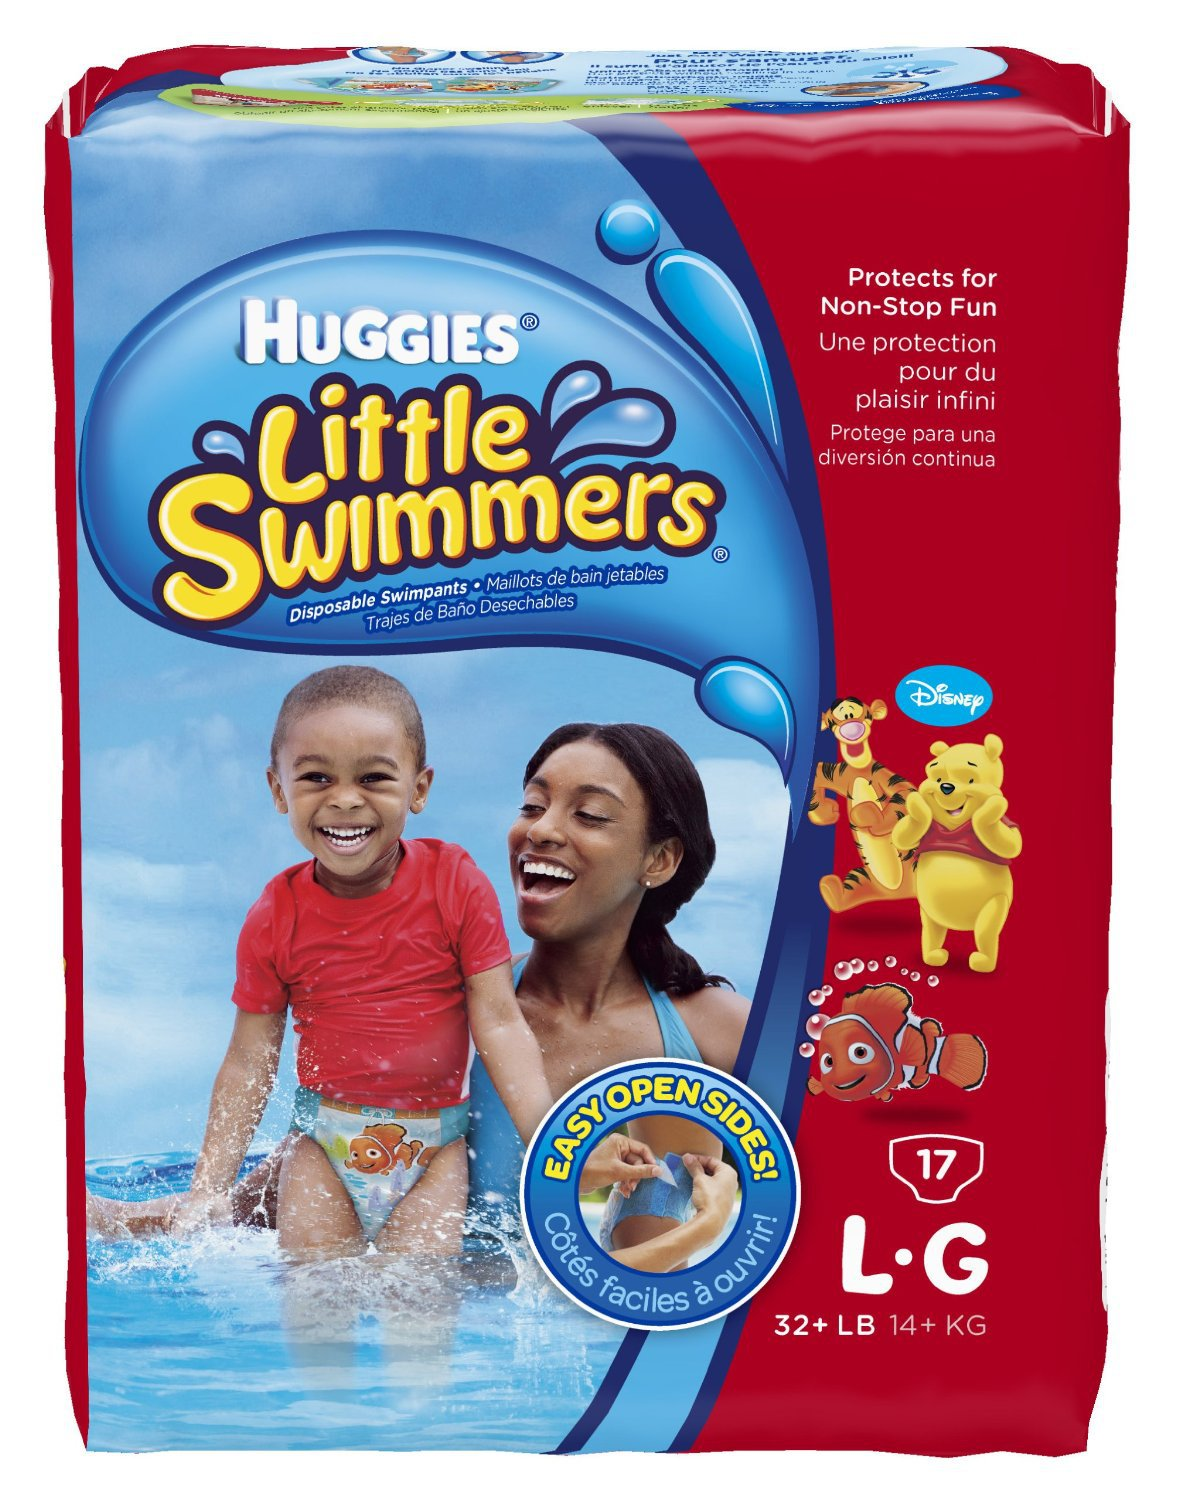 Huggies Little Swimmers Disposable Swimpants Size LG, 6 packs of 17 - 102  Total (FREE SHIPPING)